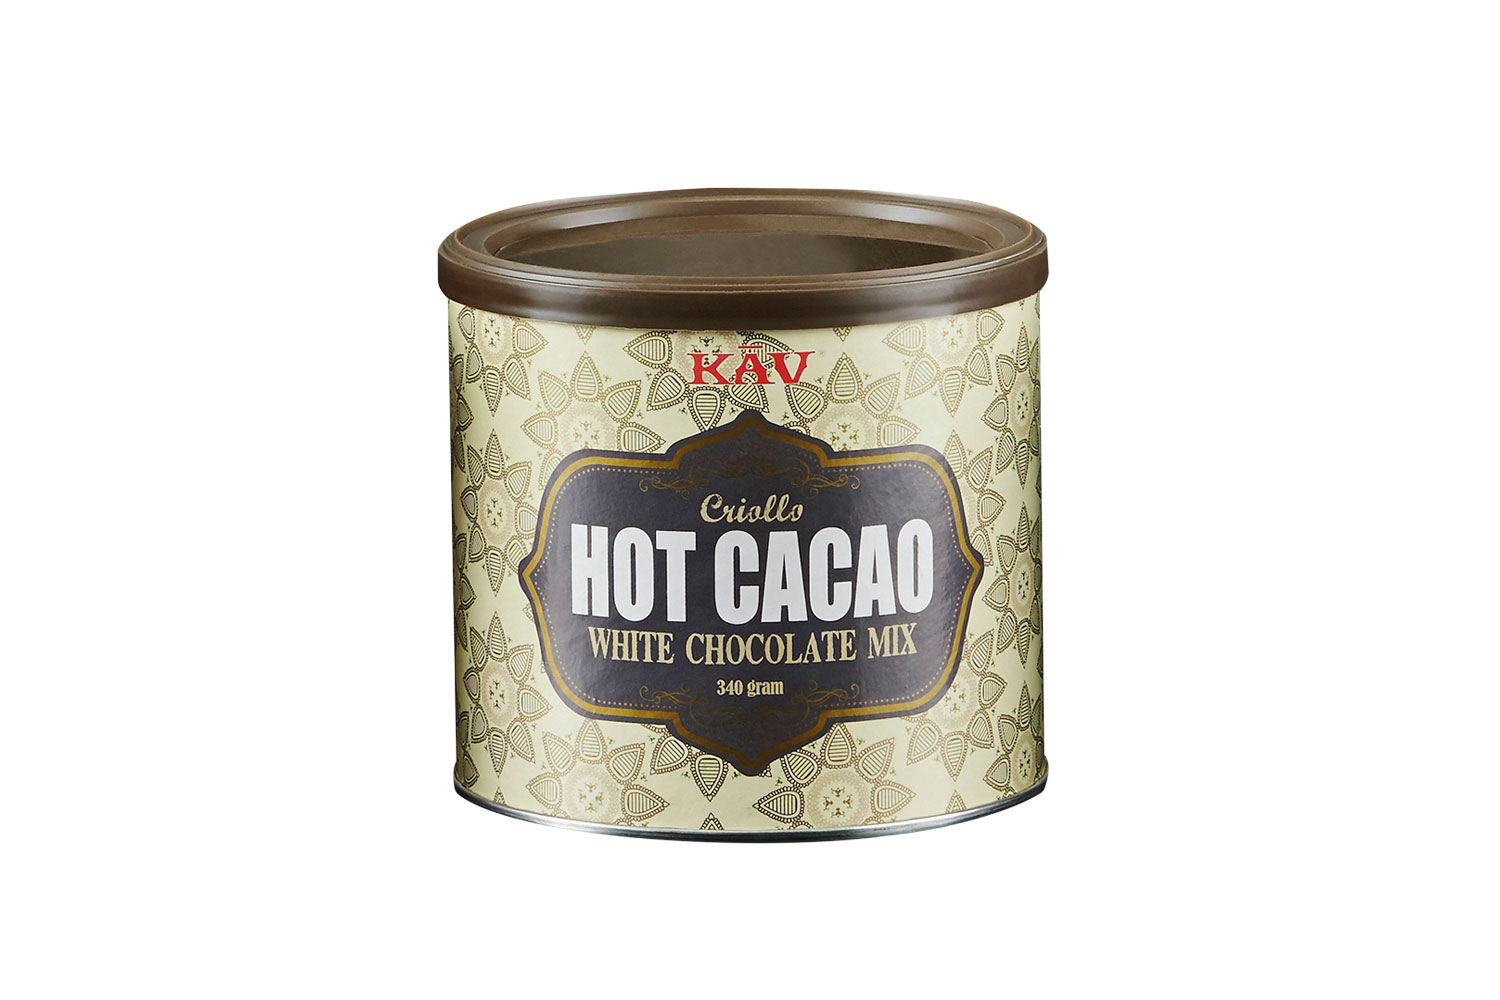 Hot-Cacao-White-Chocolate-Mix-1500x1000